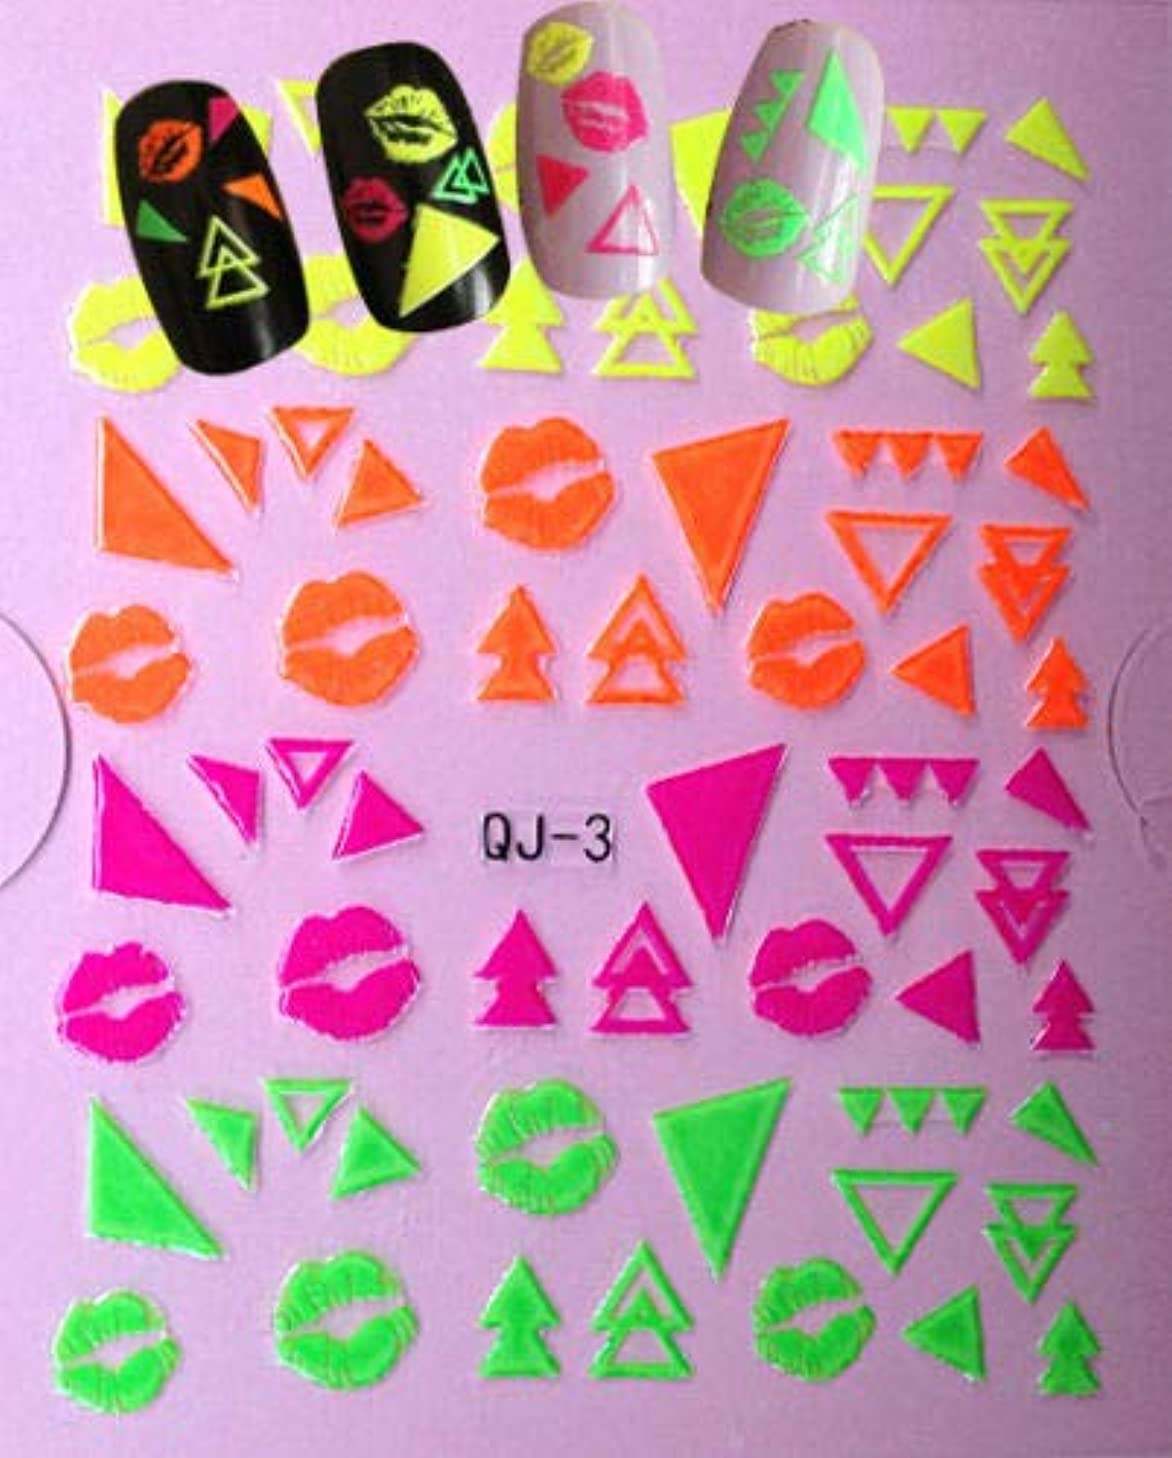 Nail Art 3D Decal Stickers Neon Lips Triangles Shapes Kisses